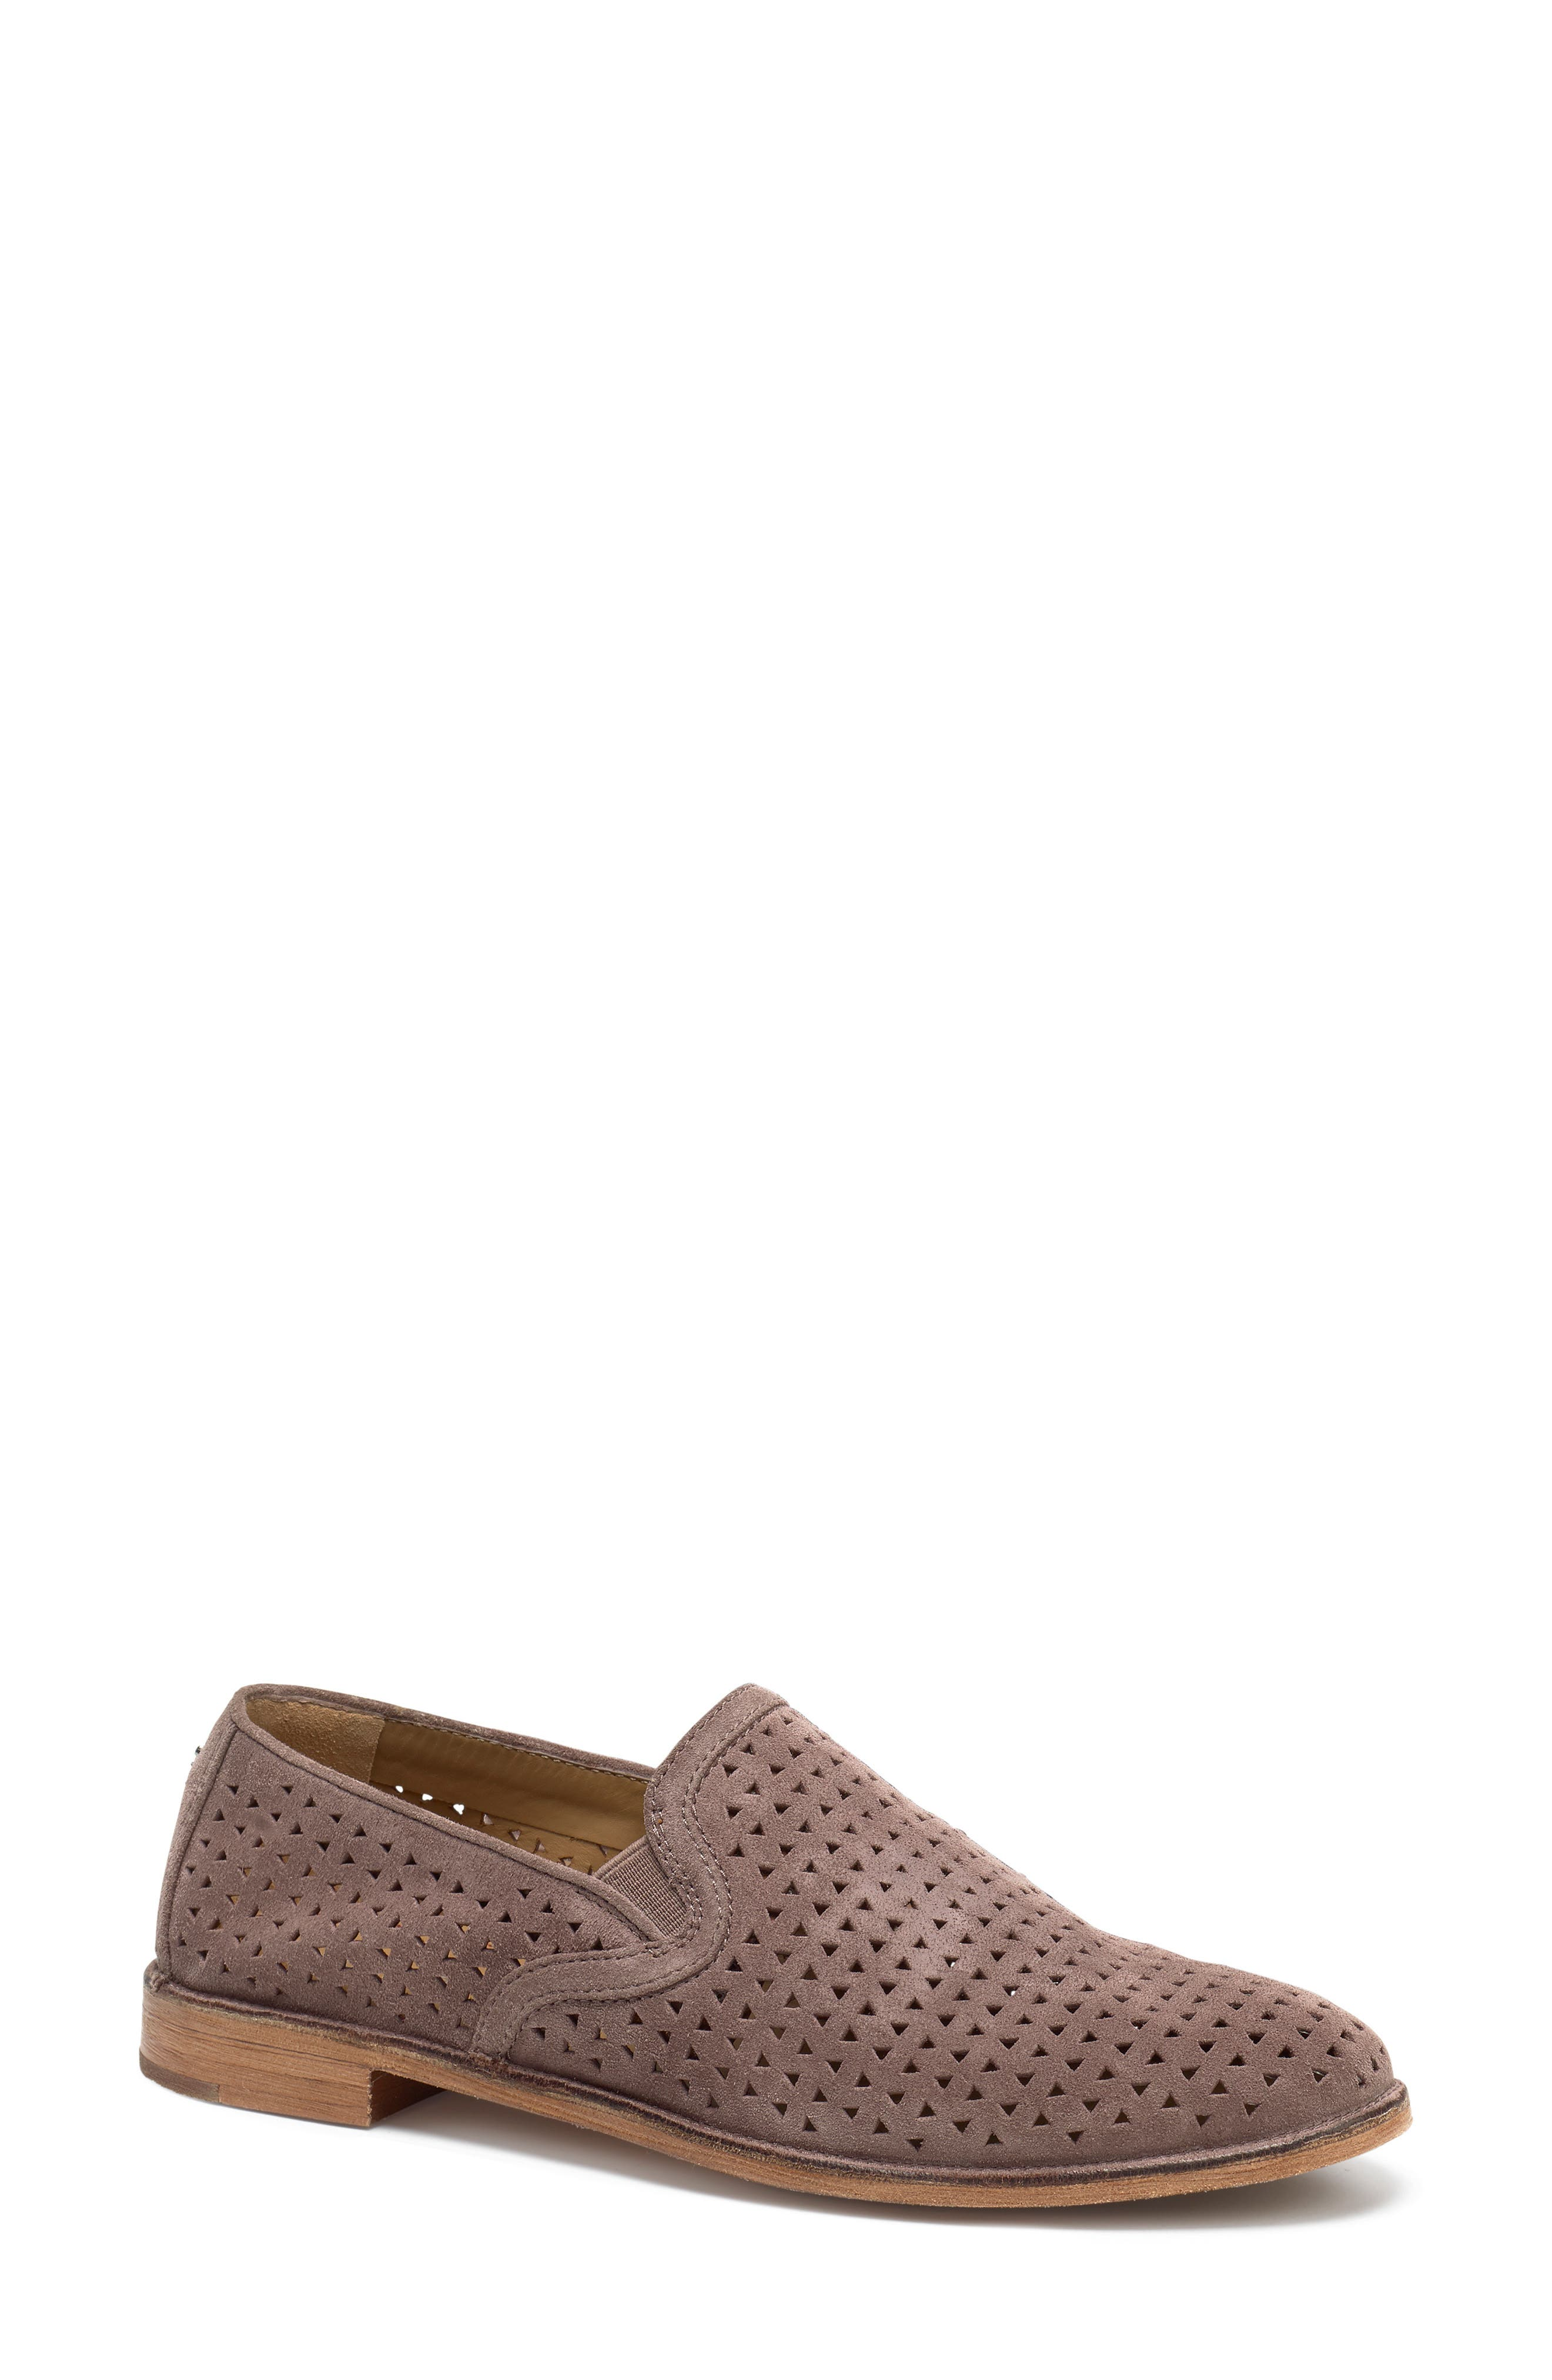 TRASK Ali Perforated Loafer, Main, color, BLUSH SUEDE